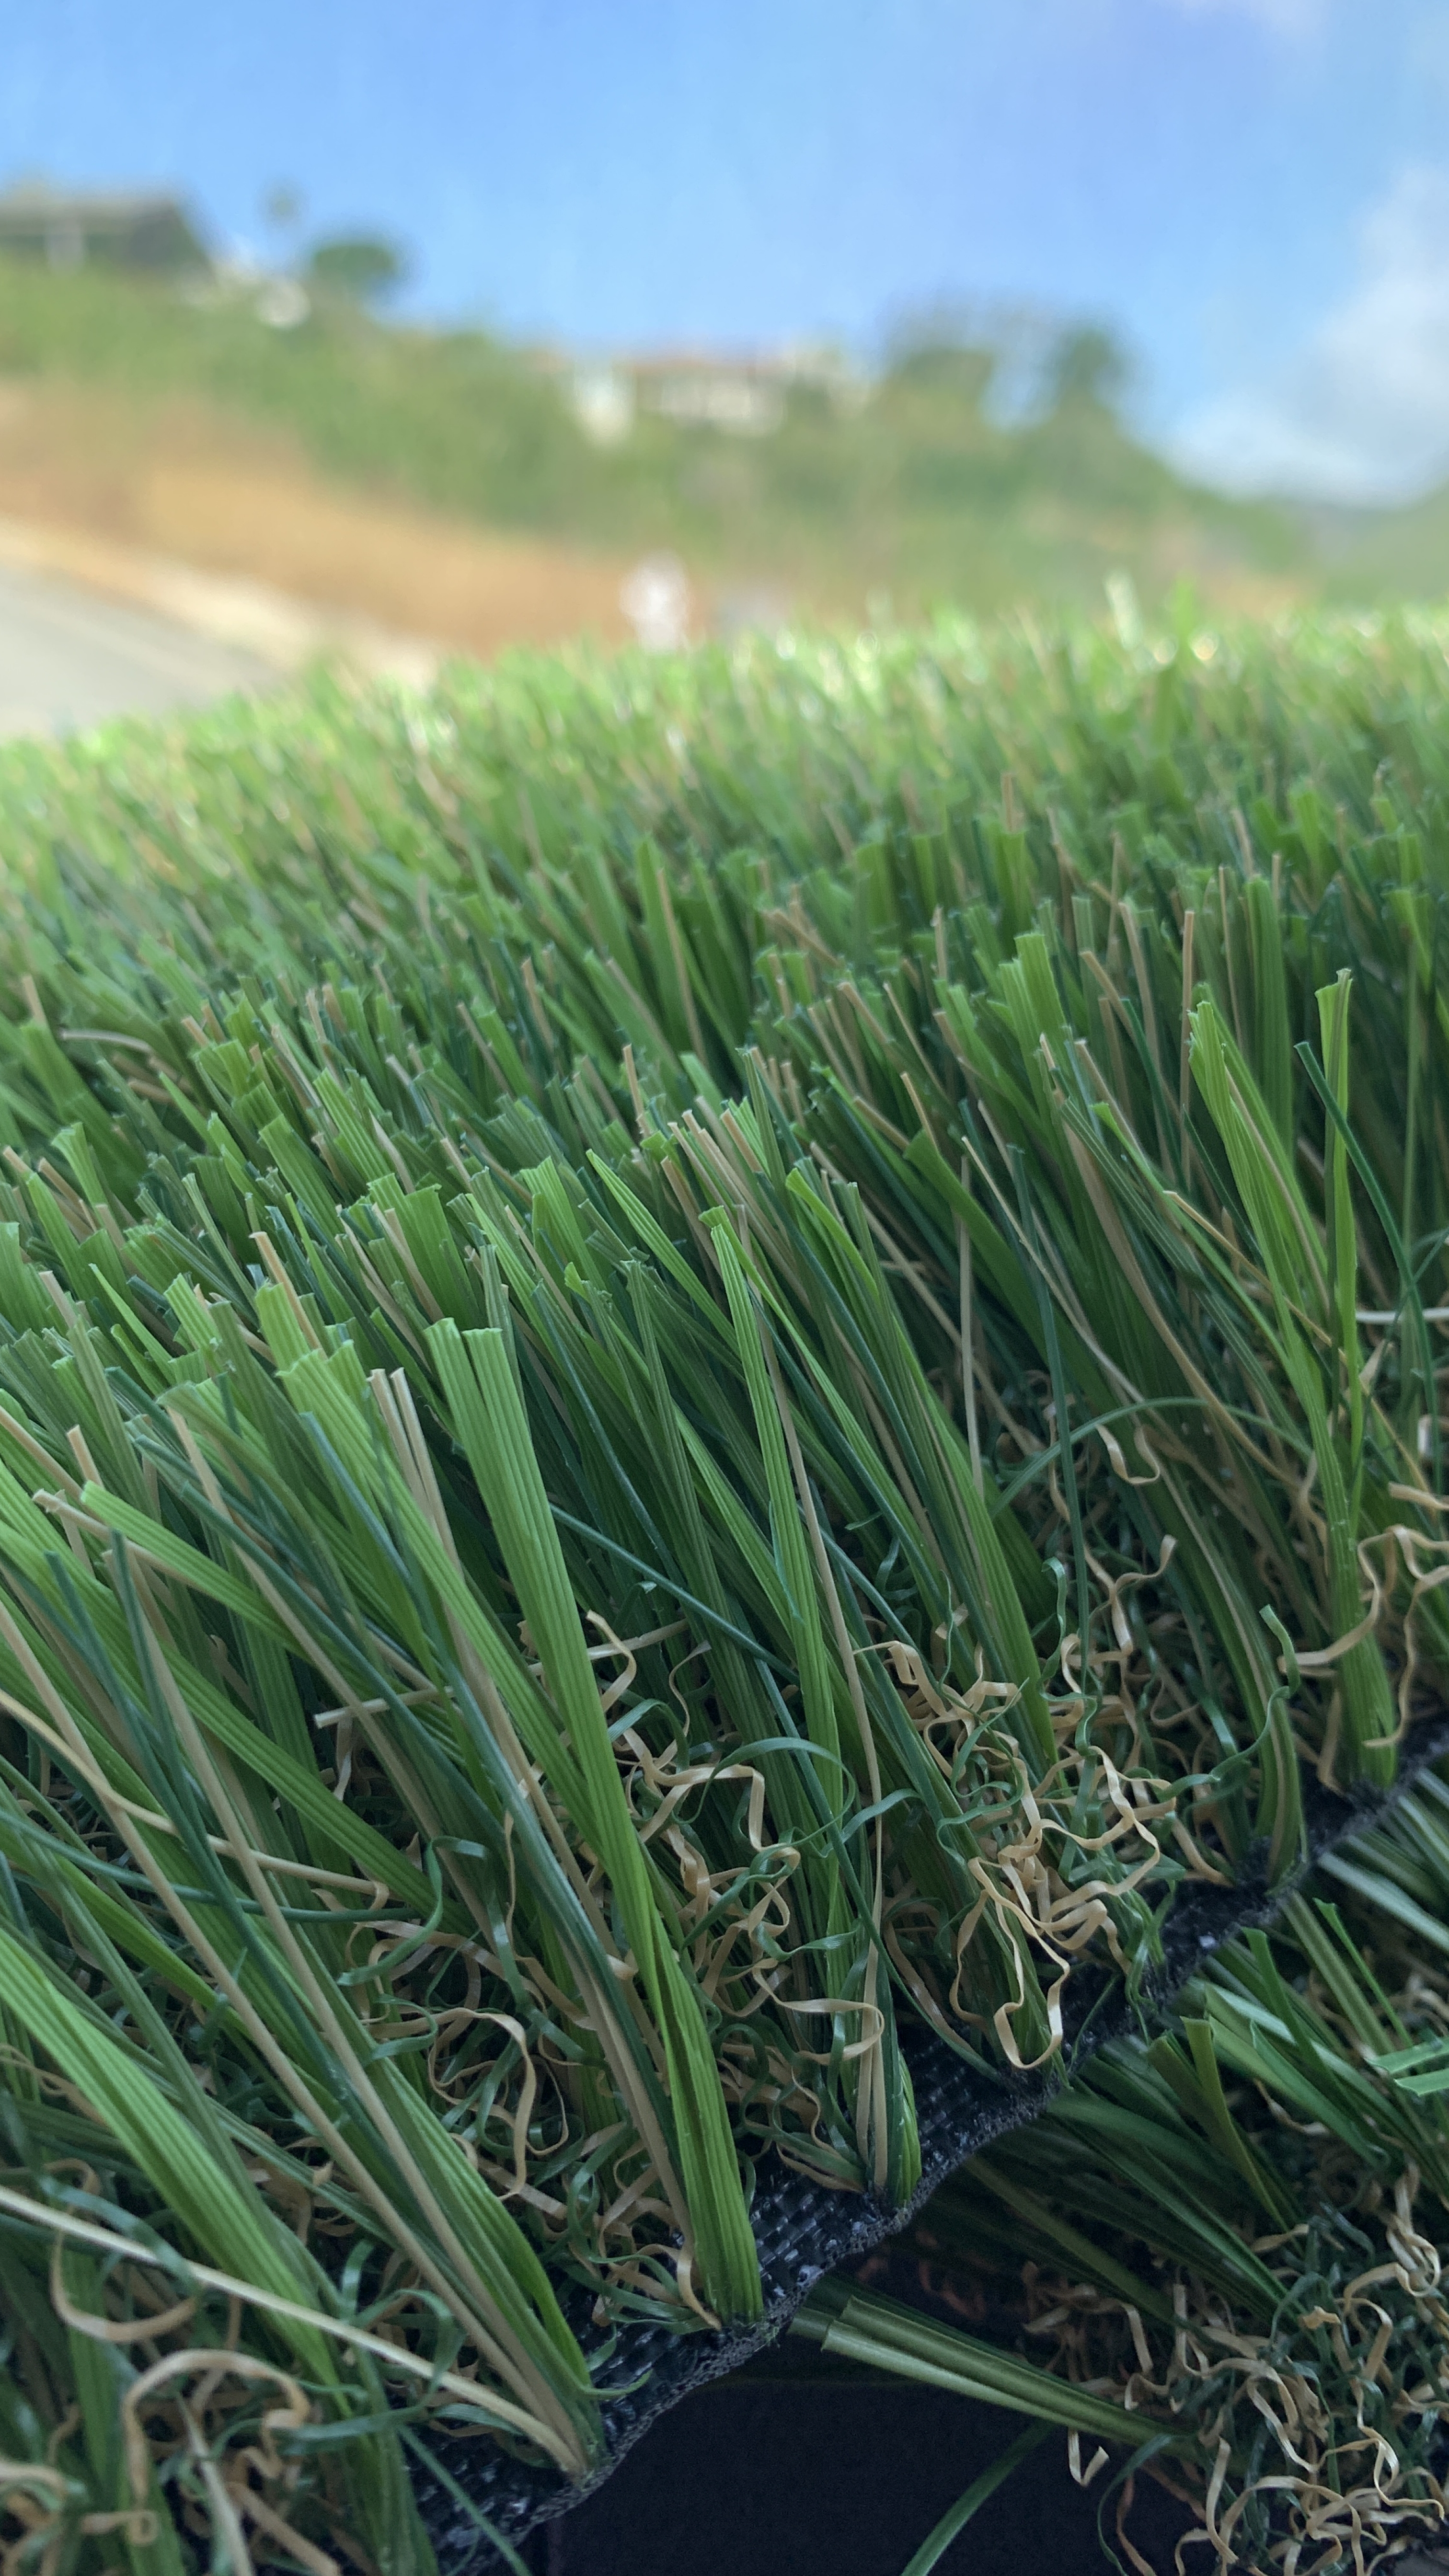 Olive-92 Stemgrass artificial turf,synthetic turf,artificial turf installation,how to install artificial turf,used artificial turf